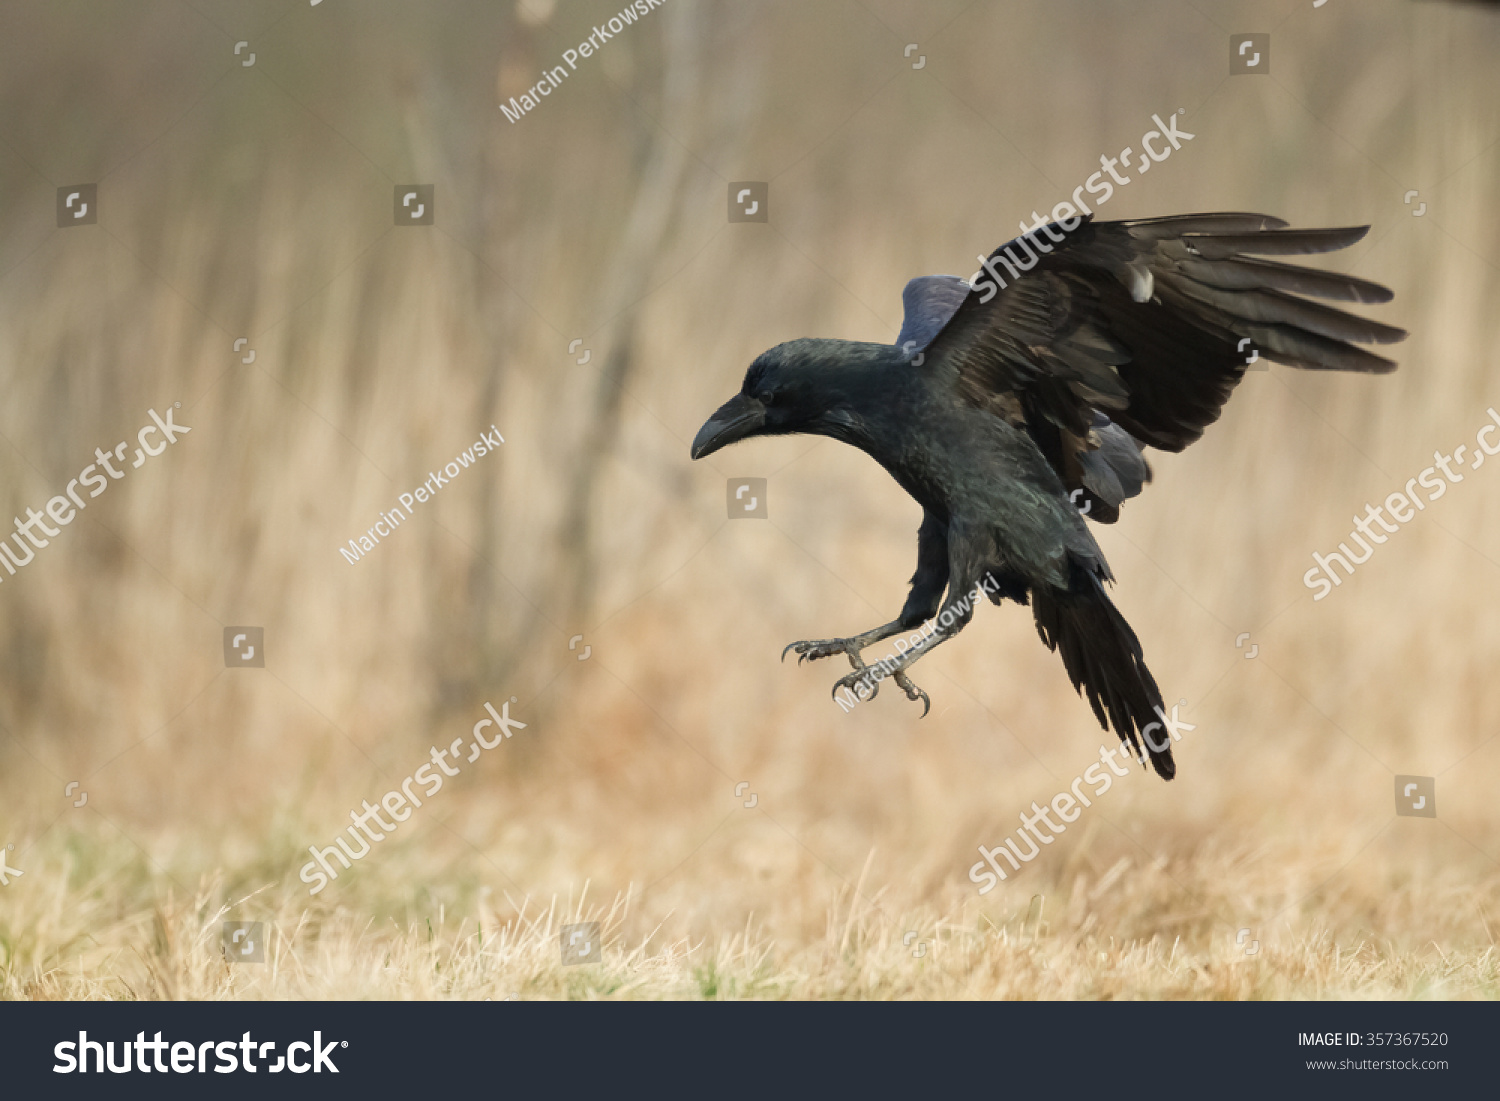 Birds Flying Raven Corvus Corax 357367520